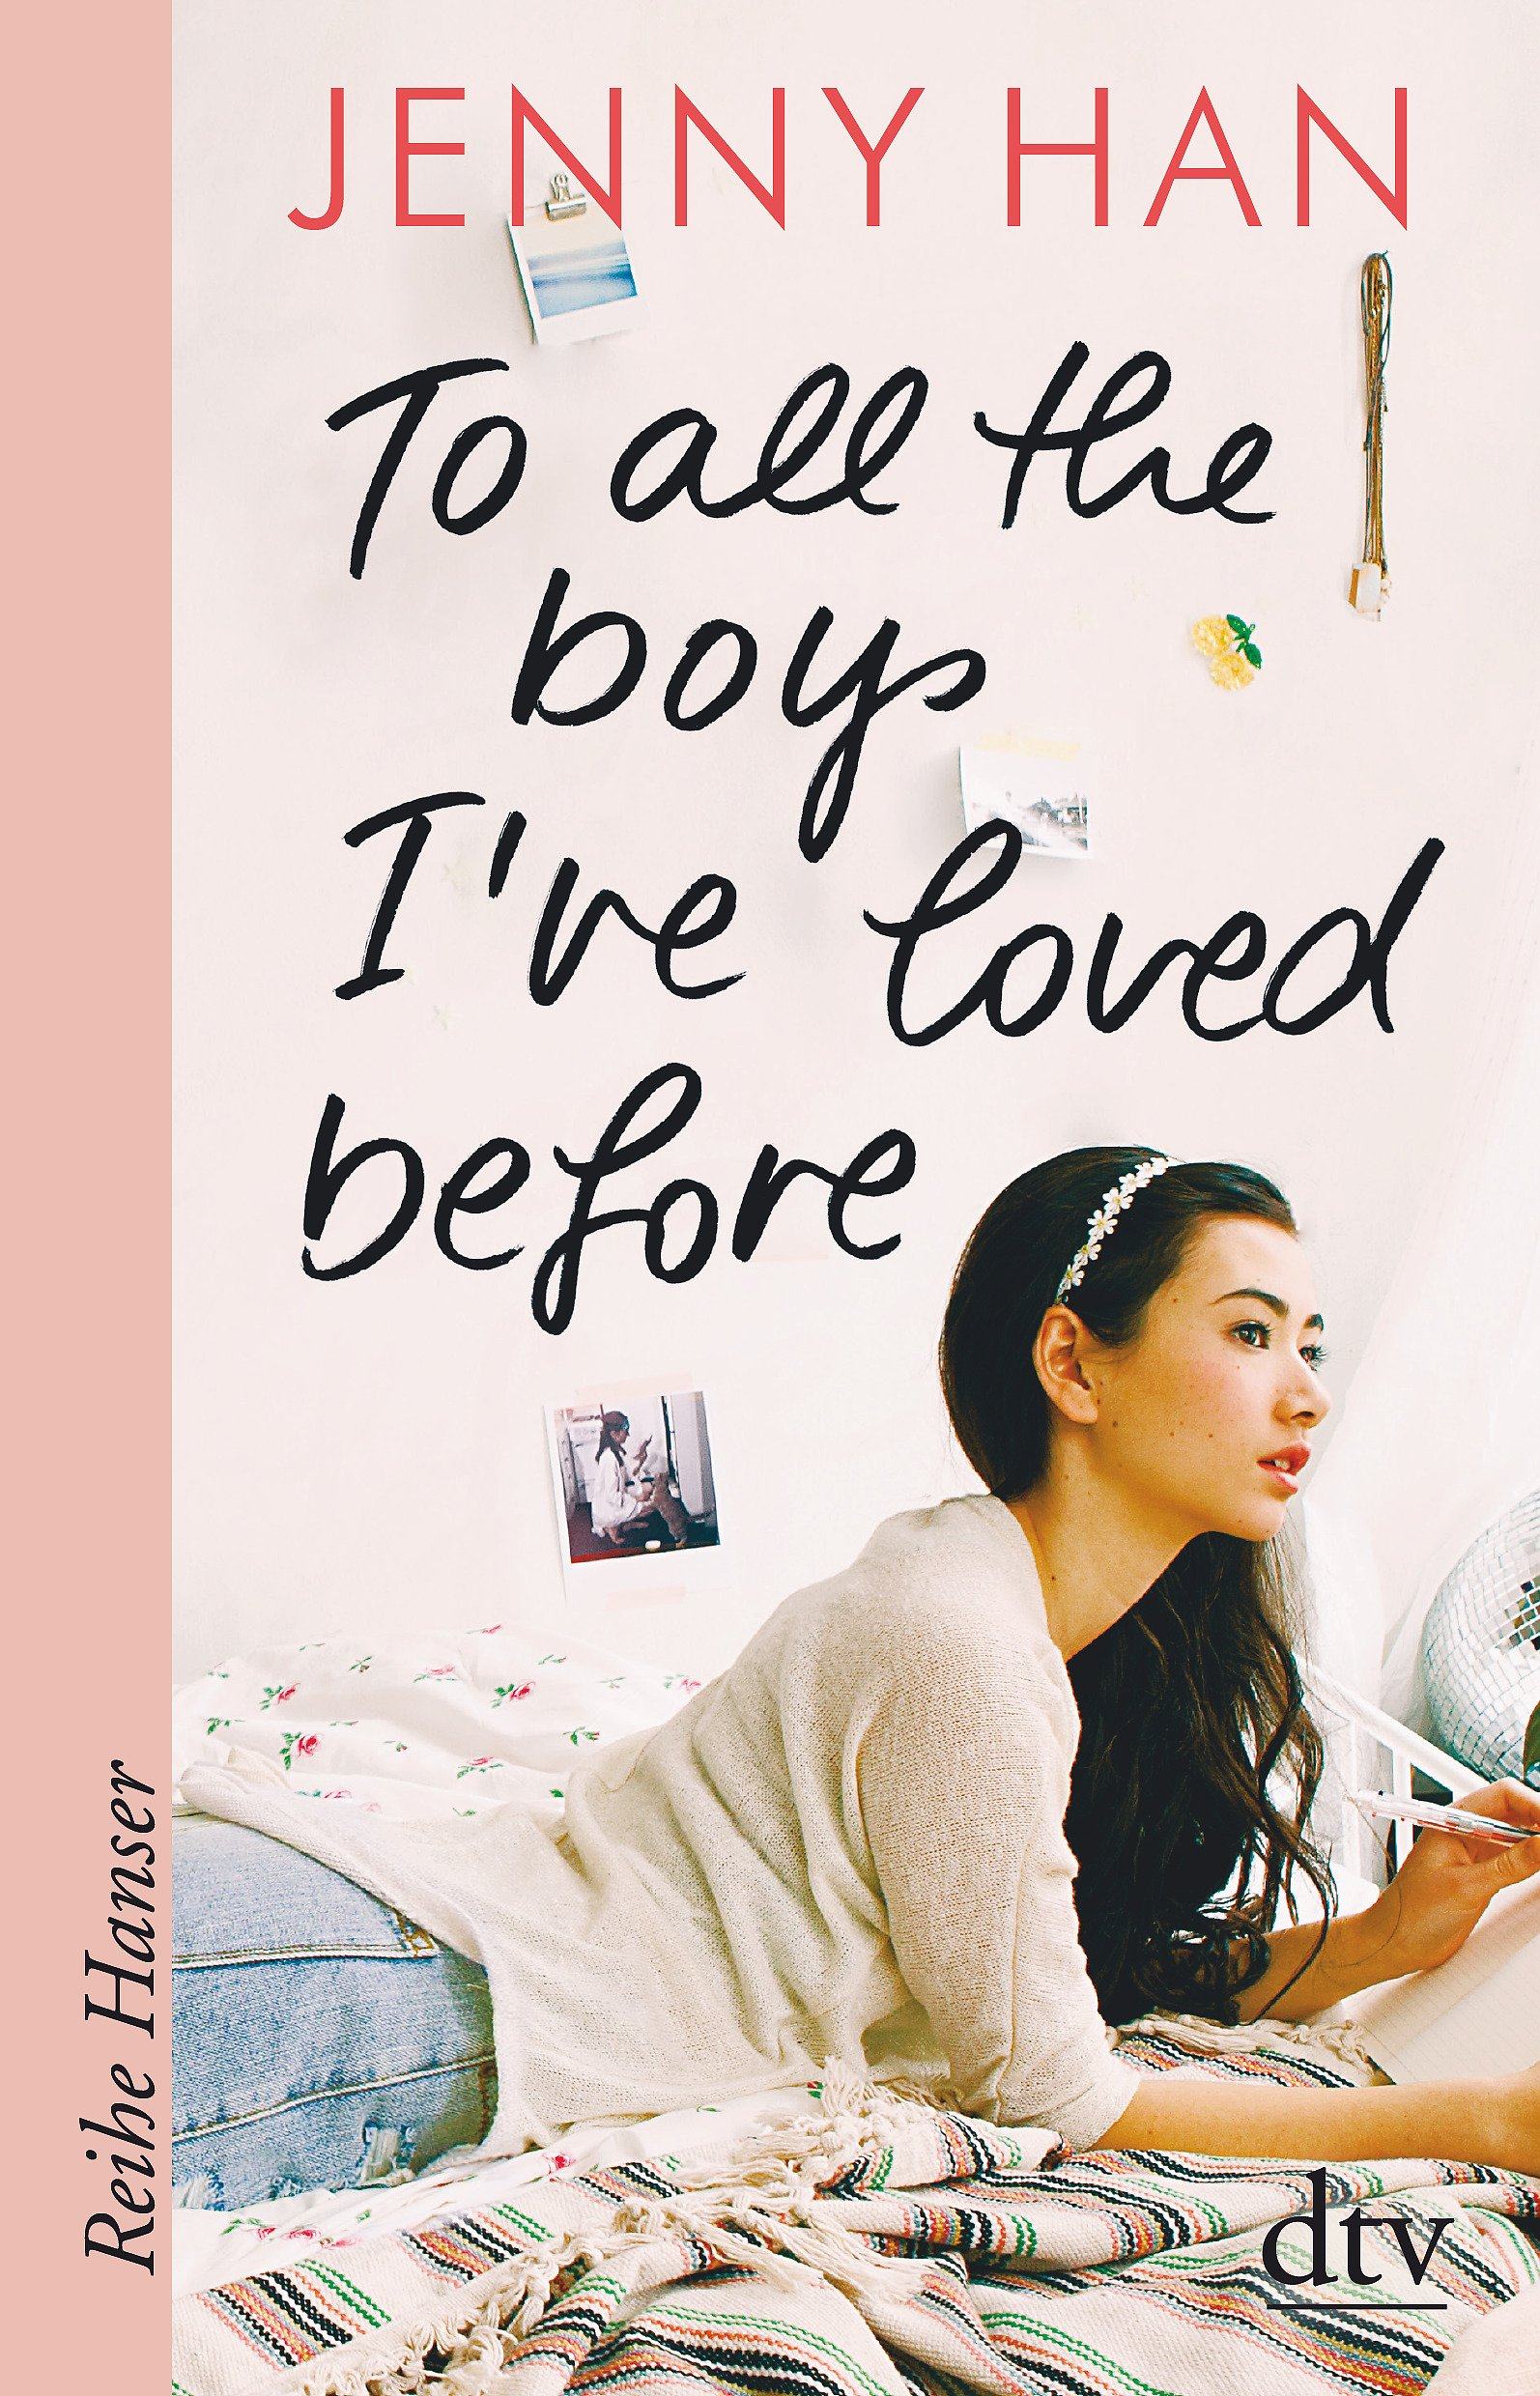 To all the boys I've loved before (Reihe Hanser)